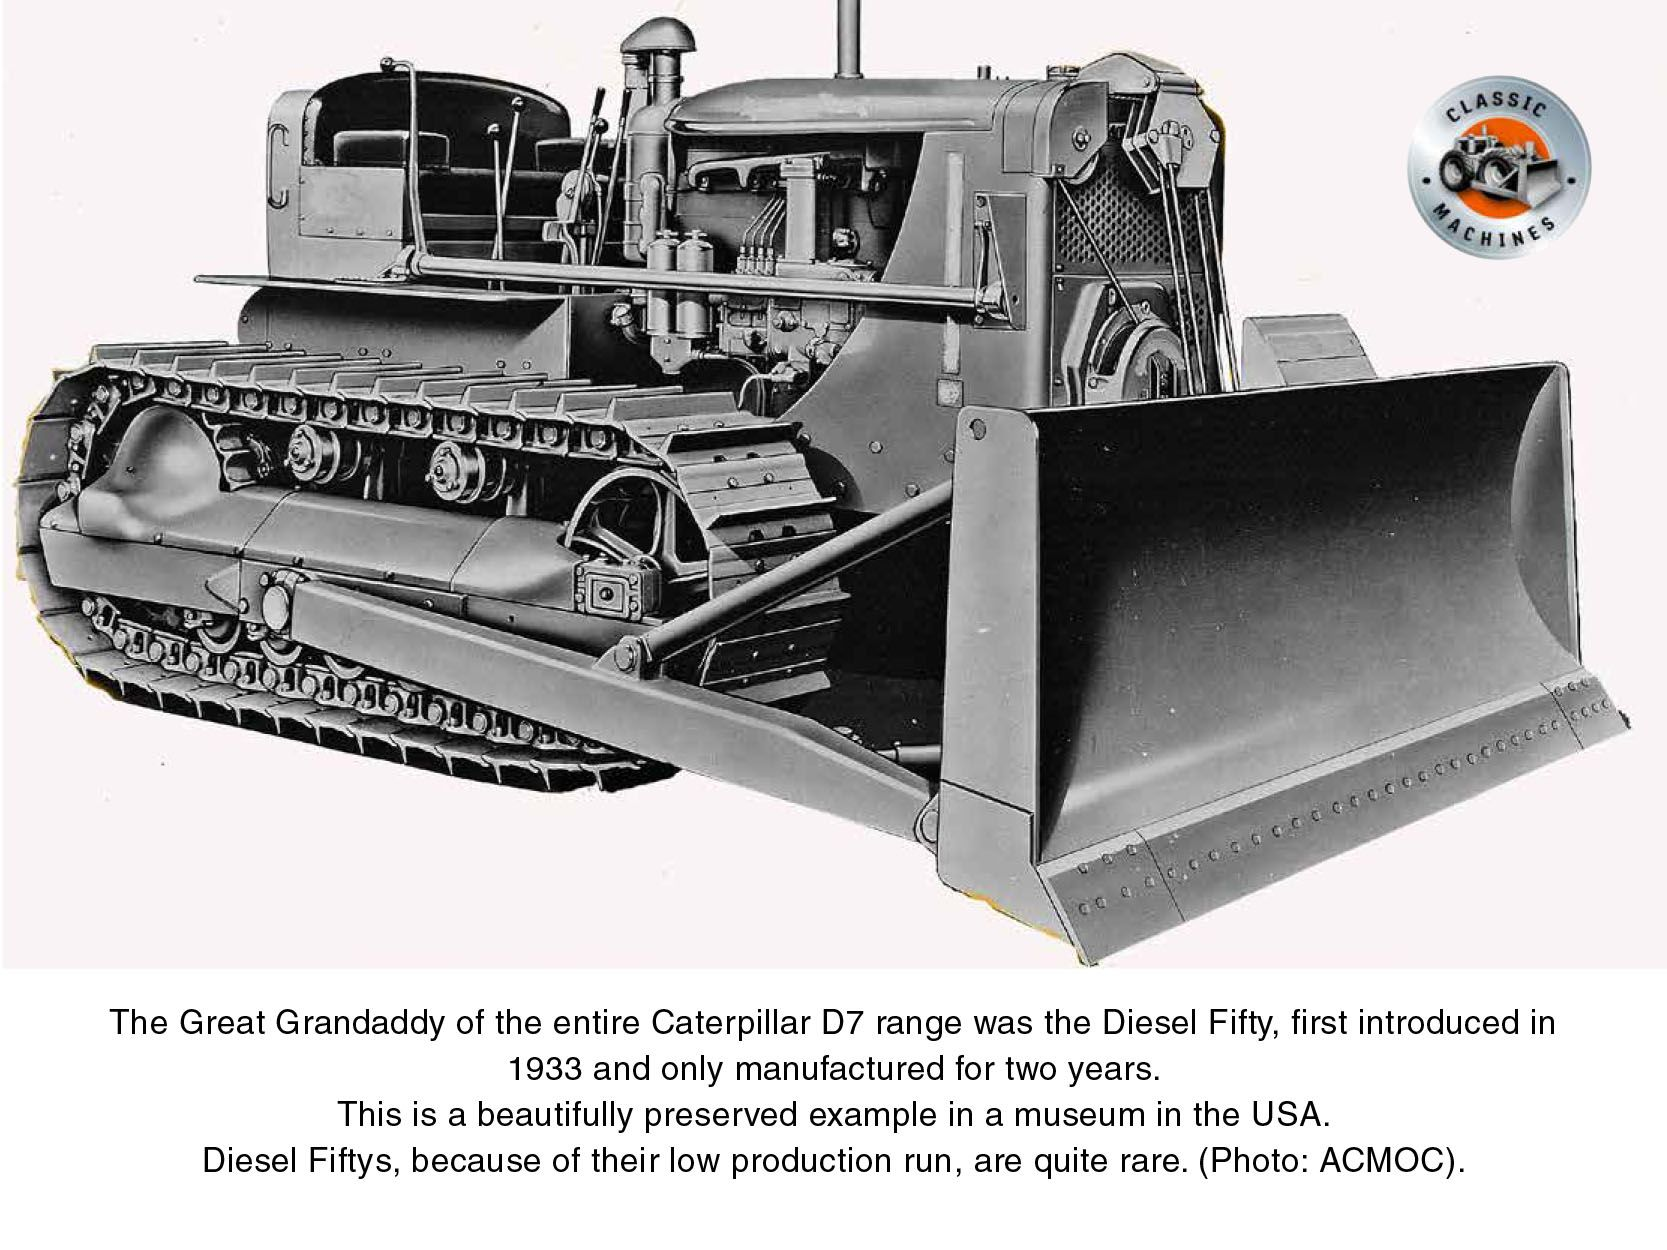 The Great Granddaddy of the entire Caterpillar D7 range